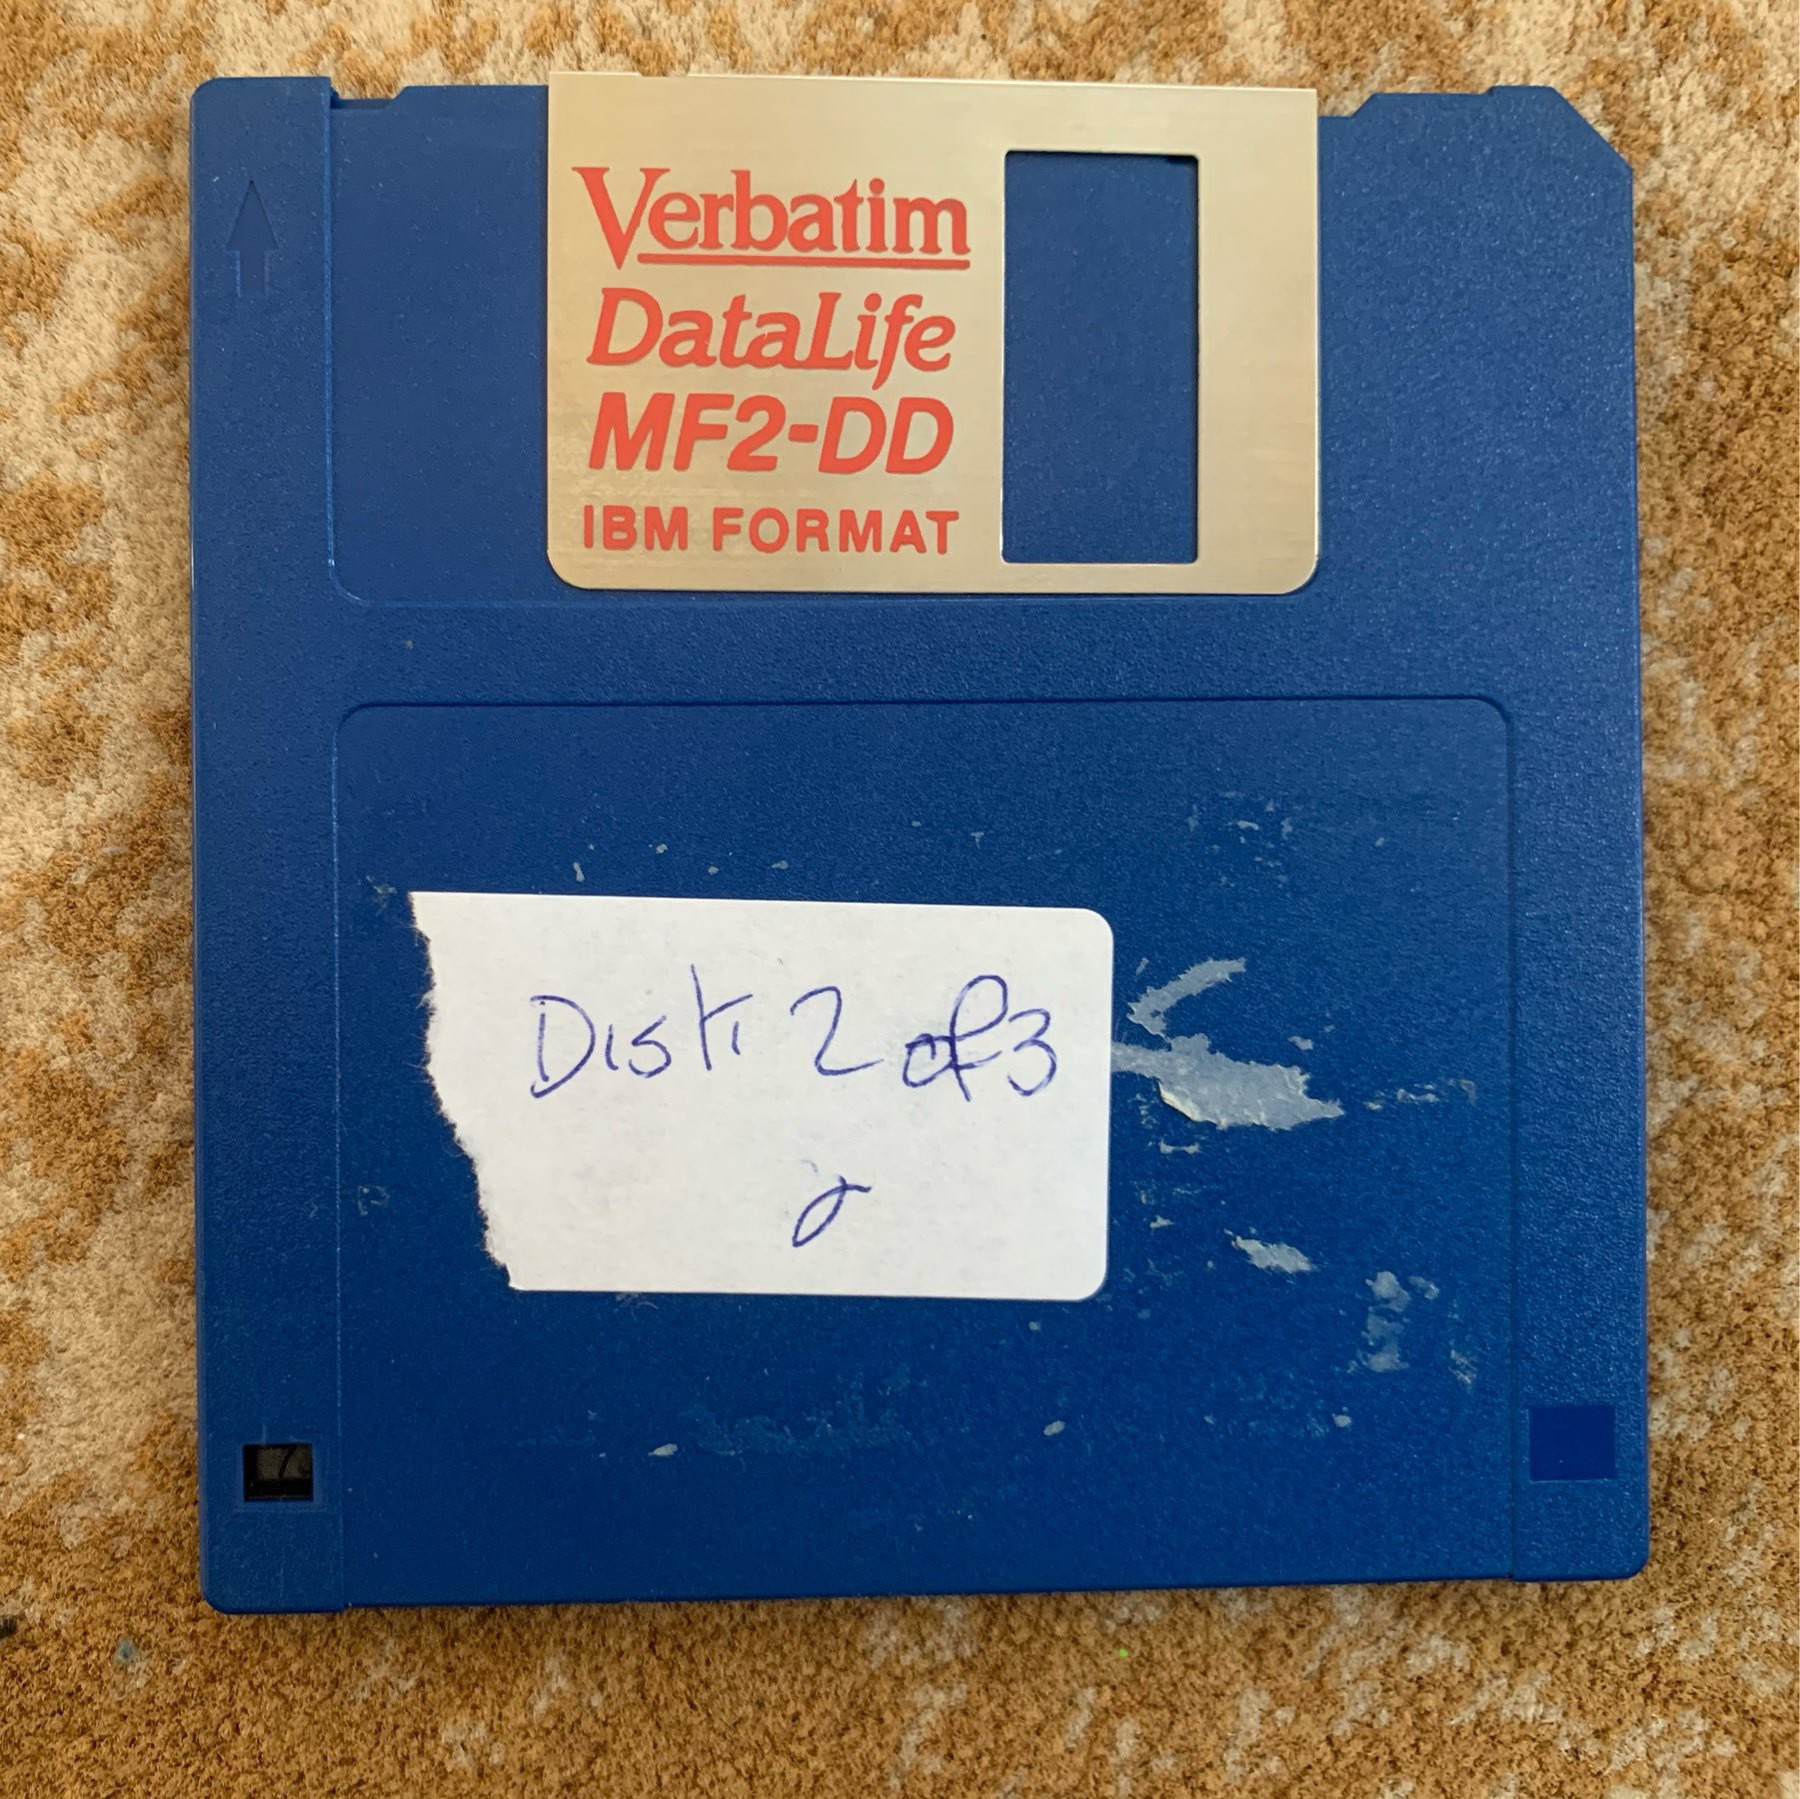 A floppy disk labelled Disk 2 of 3